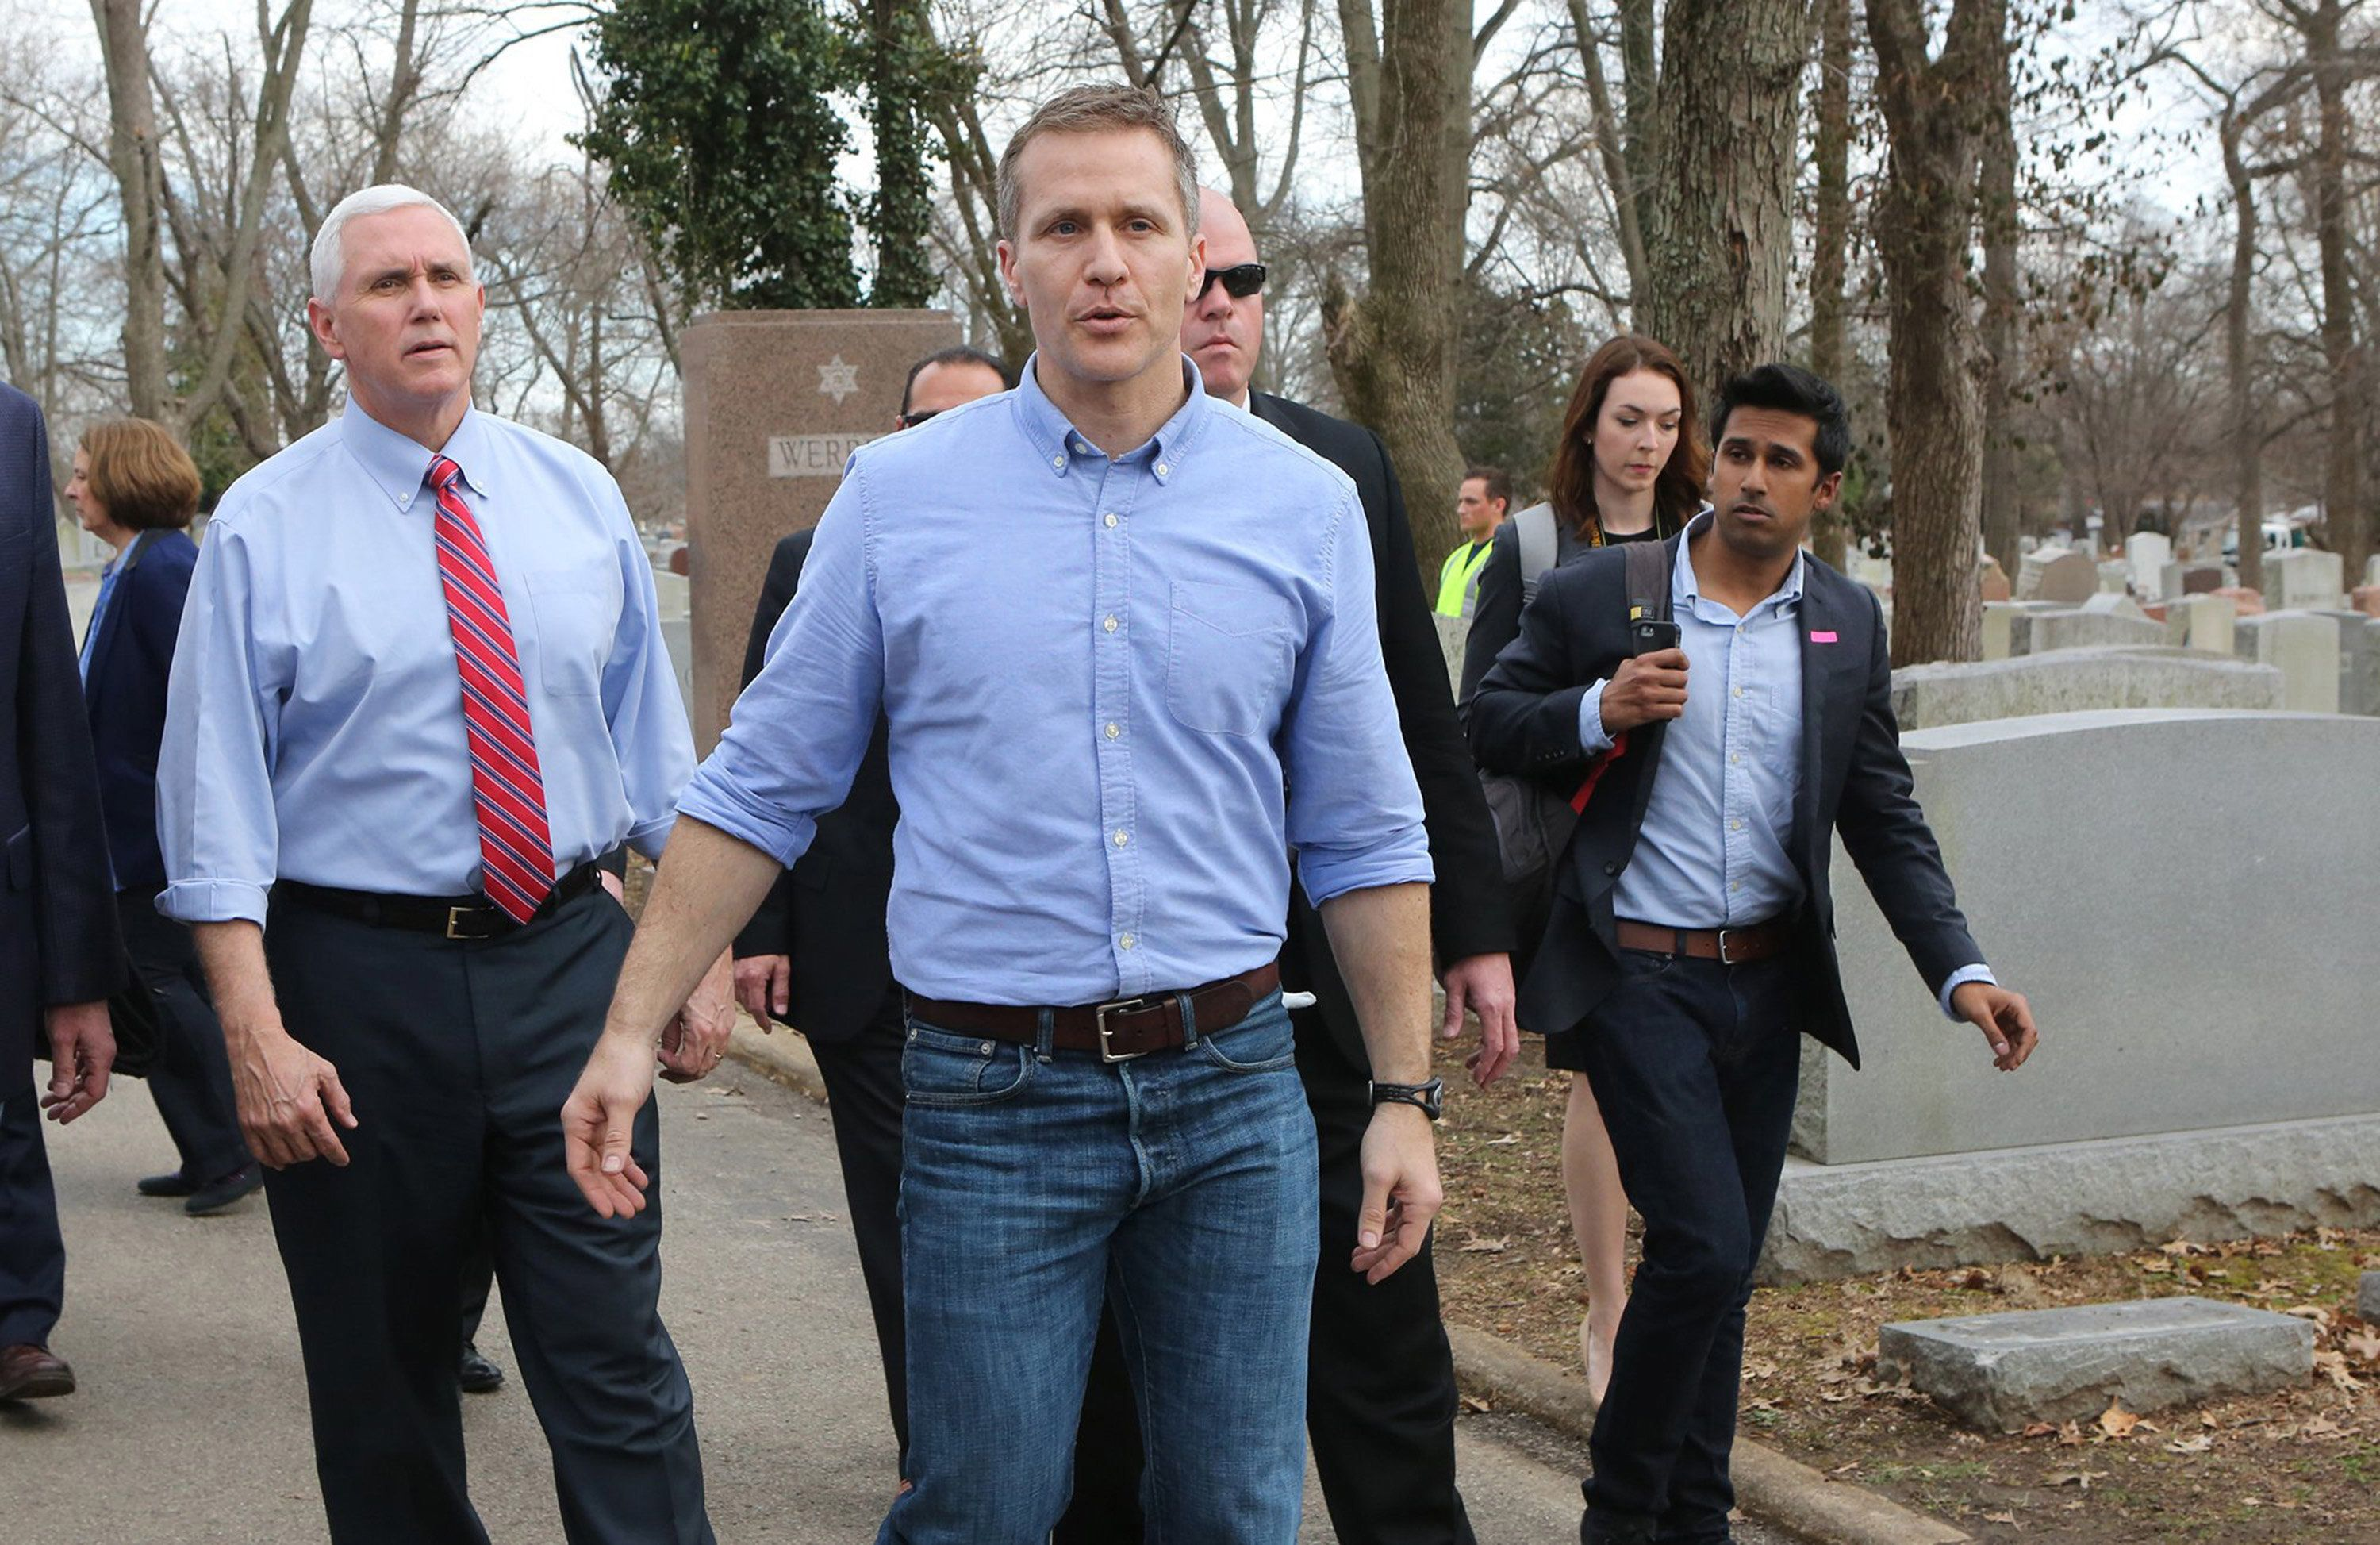 Vice President Mike Pence and Missouri Gov. Eric Greitens walk through the Chesed Shel Emeth Cemetery in University City, Mo., on Wednesday, Feb. 22, 2017, after viewing some of the damage done last weekend when more than 150 headstones were overturned. Pence has postponed a trip to Missouri that falls before Greiten's criminal trial. (J.B. Forbes/St. Louis Post-Dispatch/TNS via Getty Images)